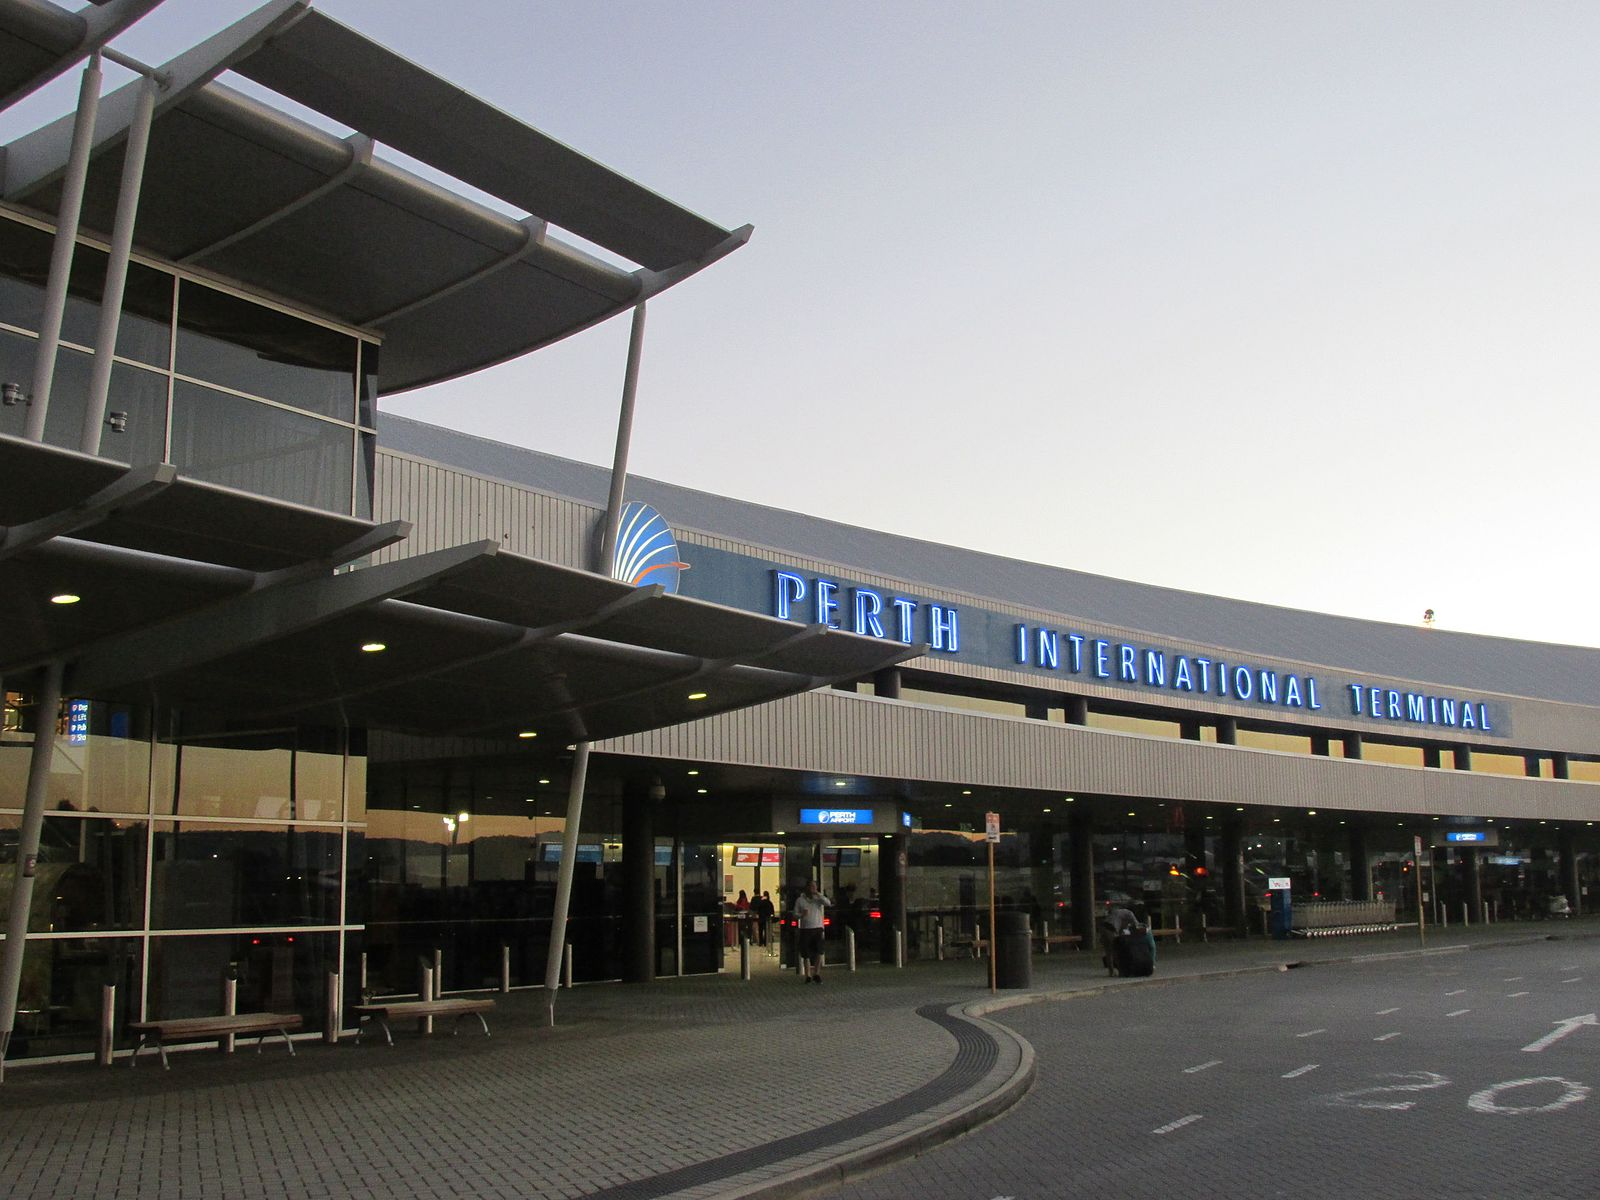 Perth Airport serves the city of Perth in Western Australia.